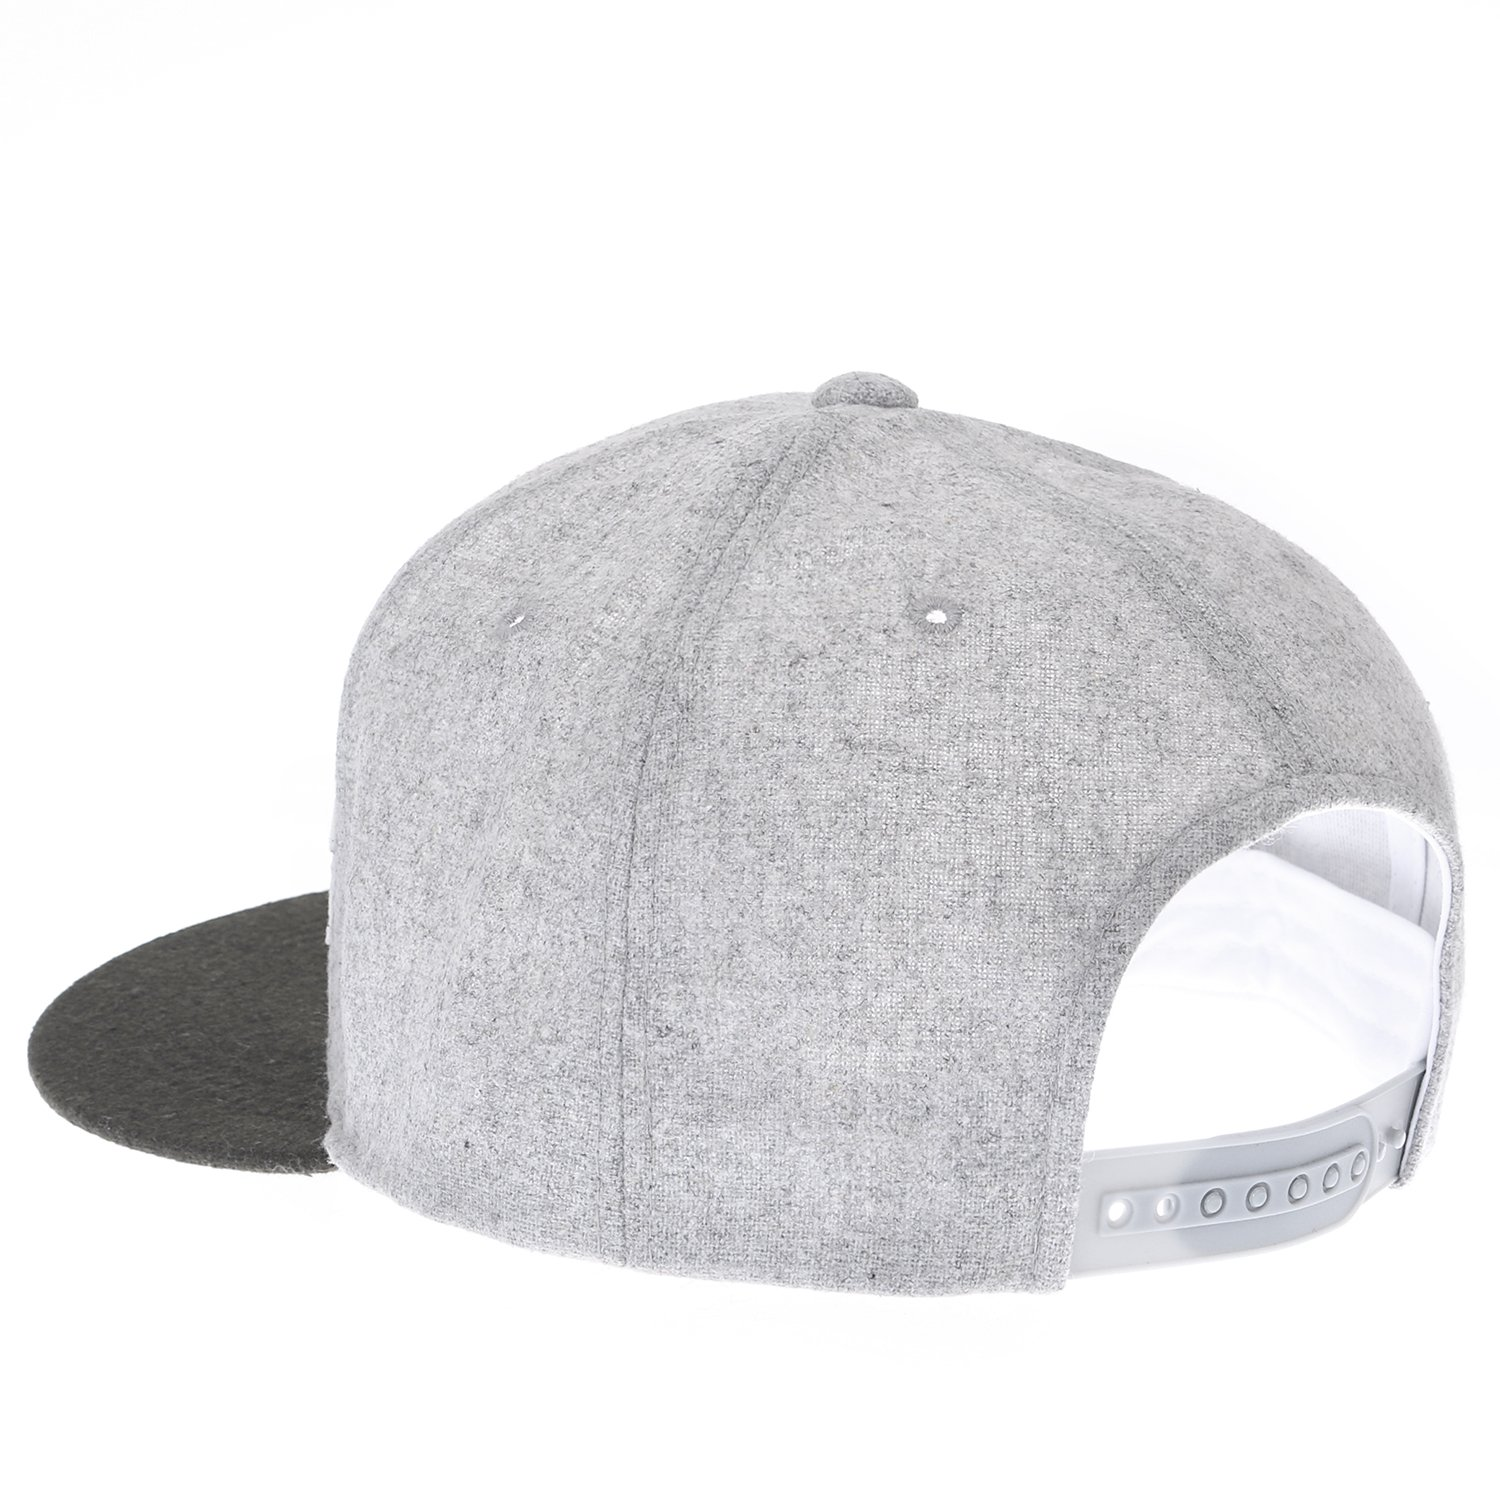 ililily Letter Patch Attached Flat Bill Snap Back Big Size Trucker Hat